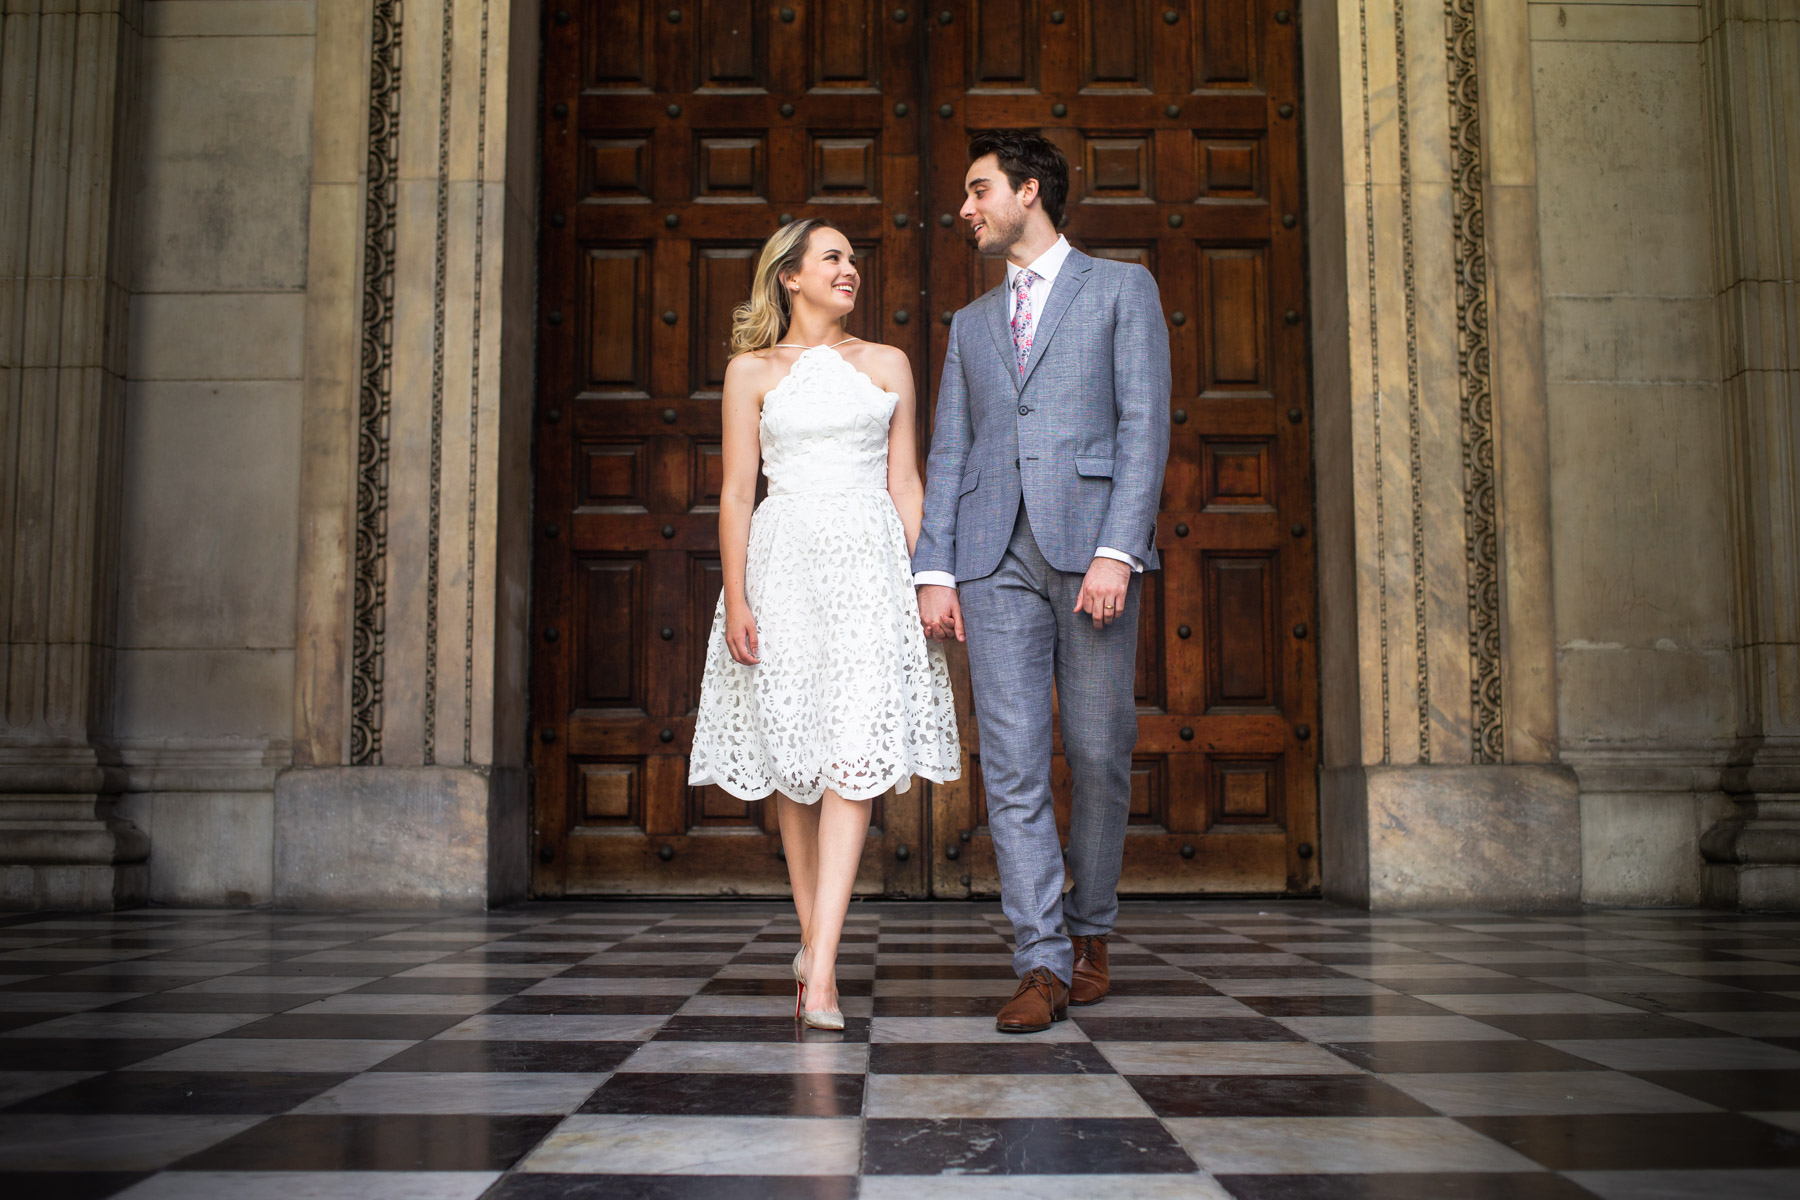 ST PAULS'S CATHEDRAL ENGAGEMENT SHOOT | OLI + MEAGHAN